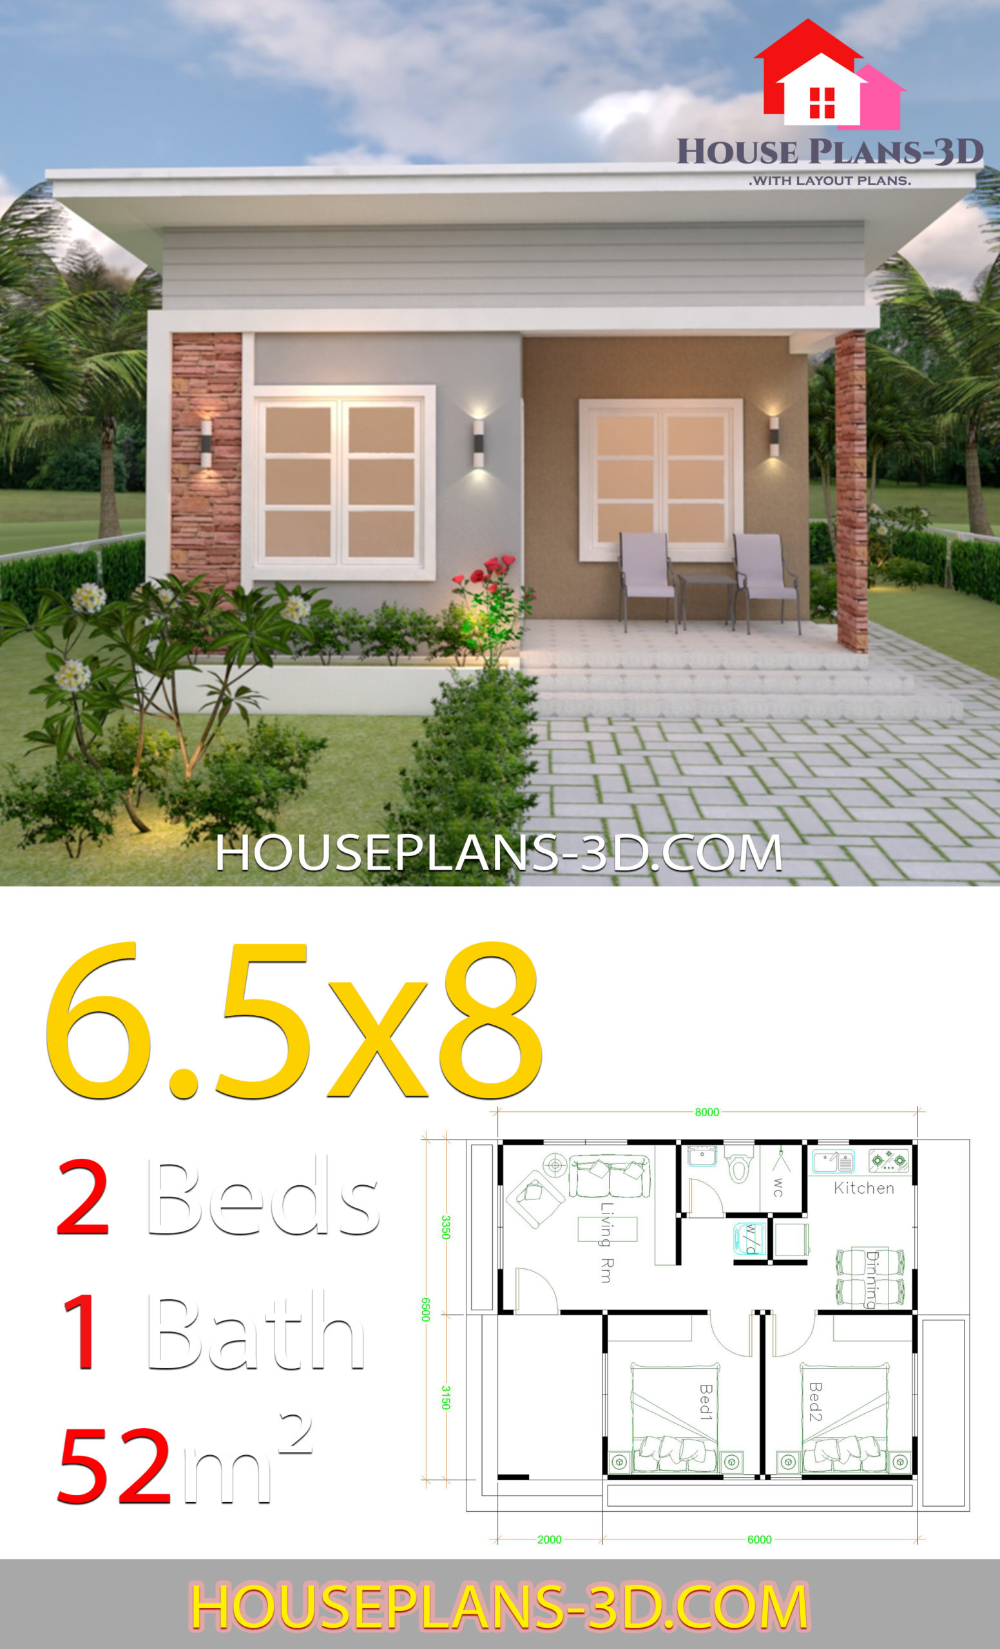 House Design Plans 6 5x8 With 2 Bedrooms Shed Roof House Plans 3d Small House Design Simple House Design Tiny House Design